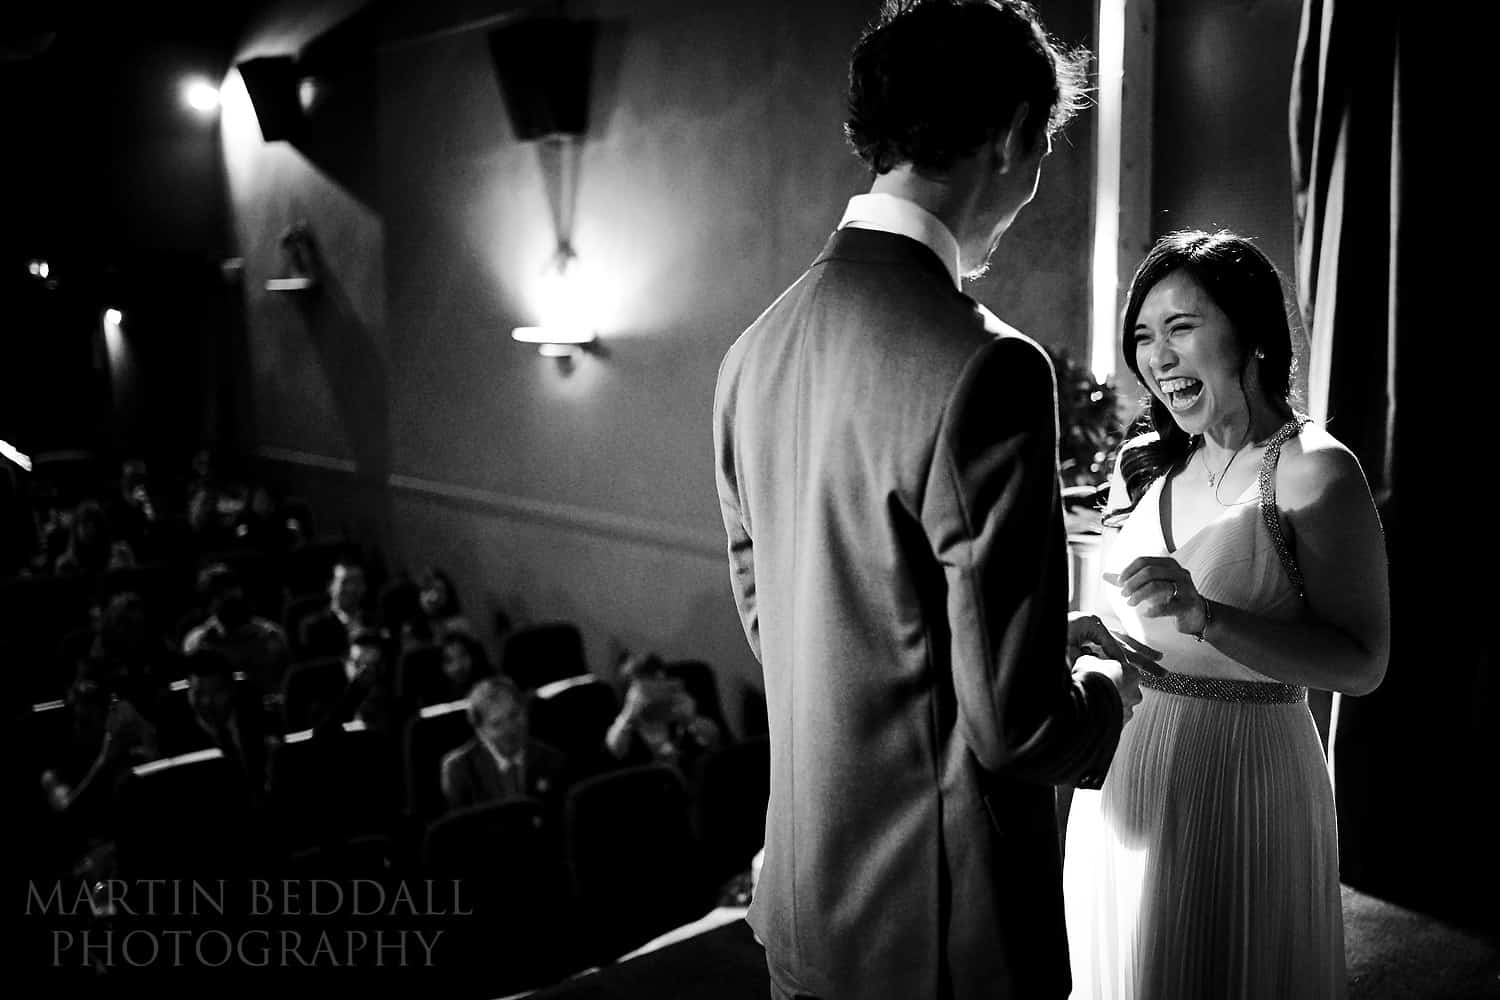 Wedding ceremony in a cinema with the Sony 35mm F1.8 lens